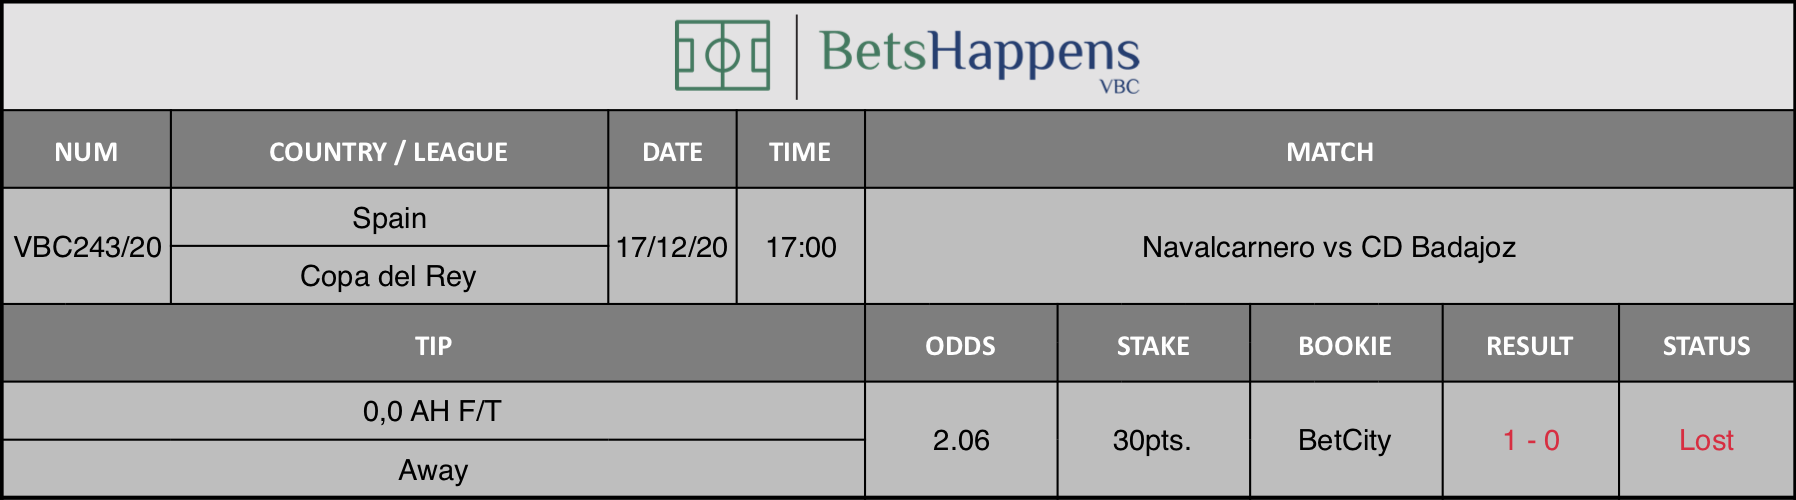 Results of our tip for the Navalcarnero vs CD Badajoz match where 0,0 AH F/T  Away is recommended.